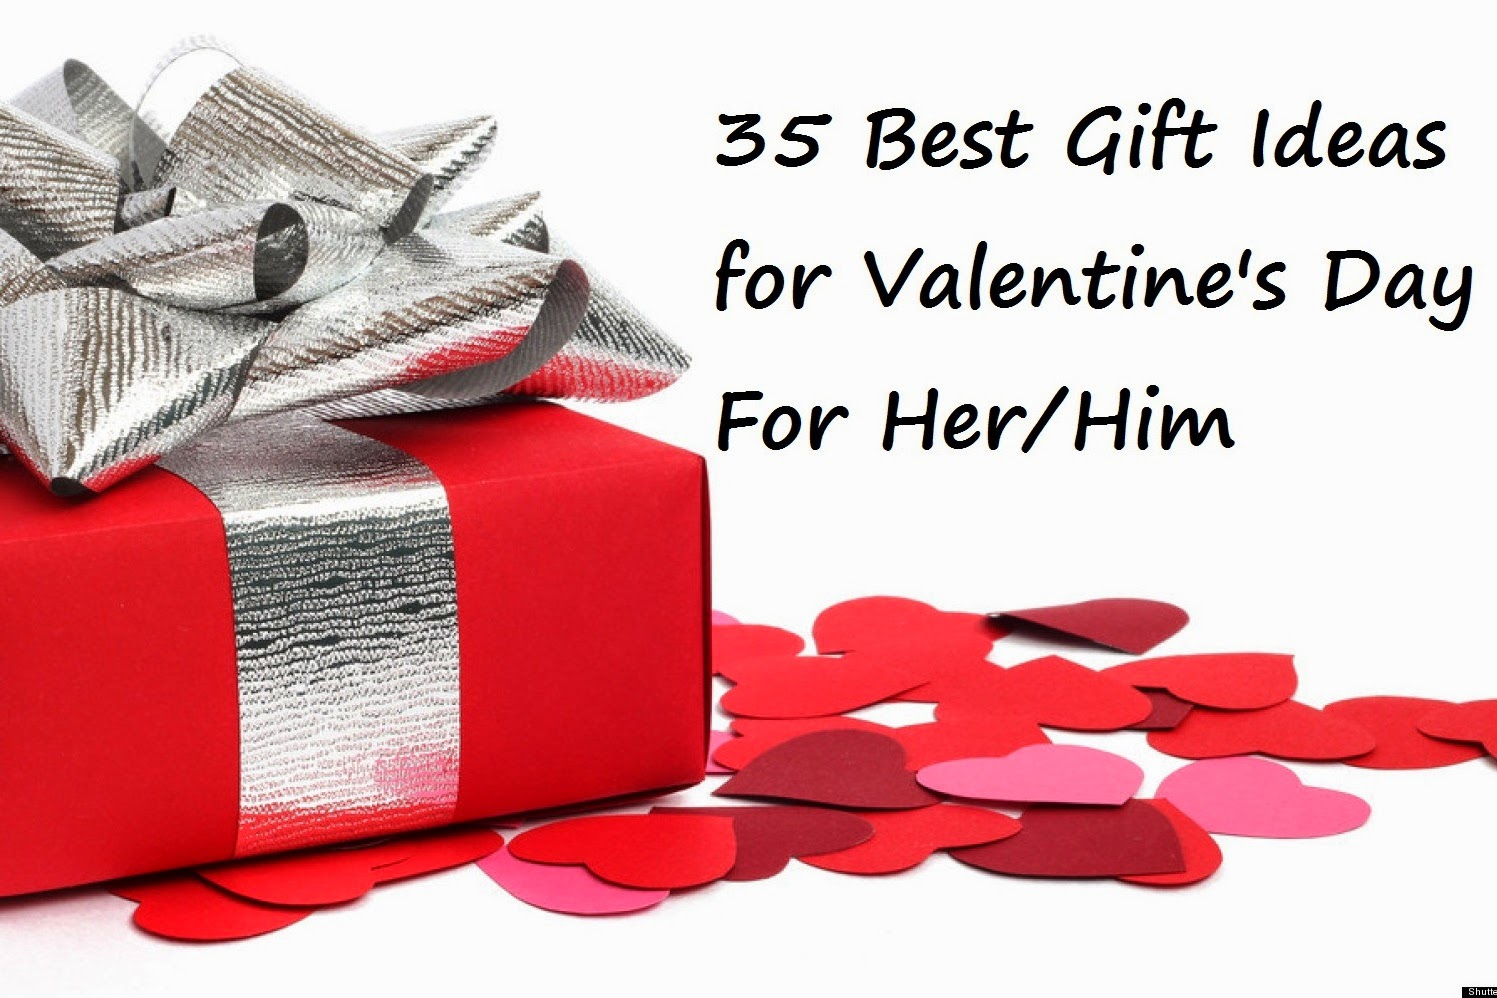 35 Best Gift Ideas For Valentines Day 2015 For Her/Him